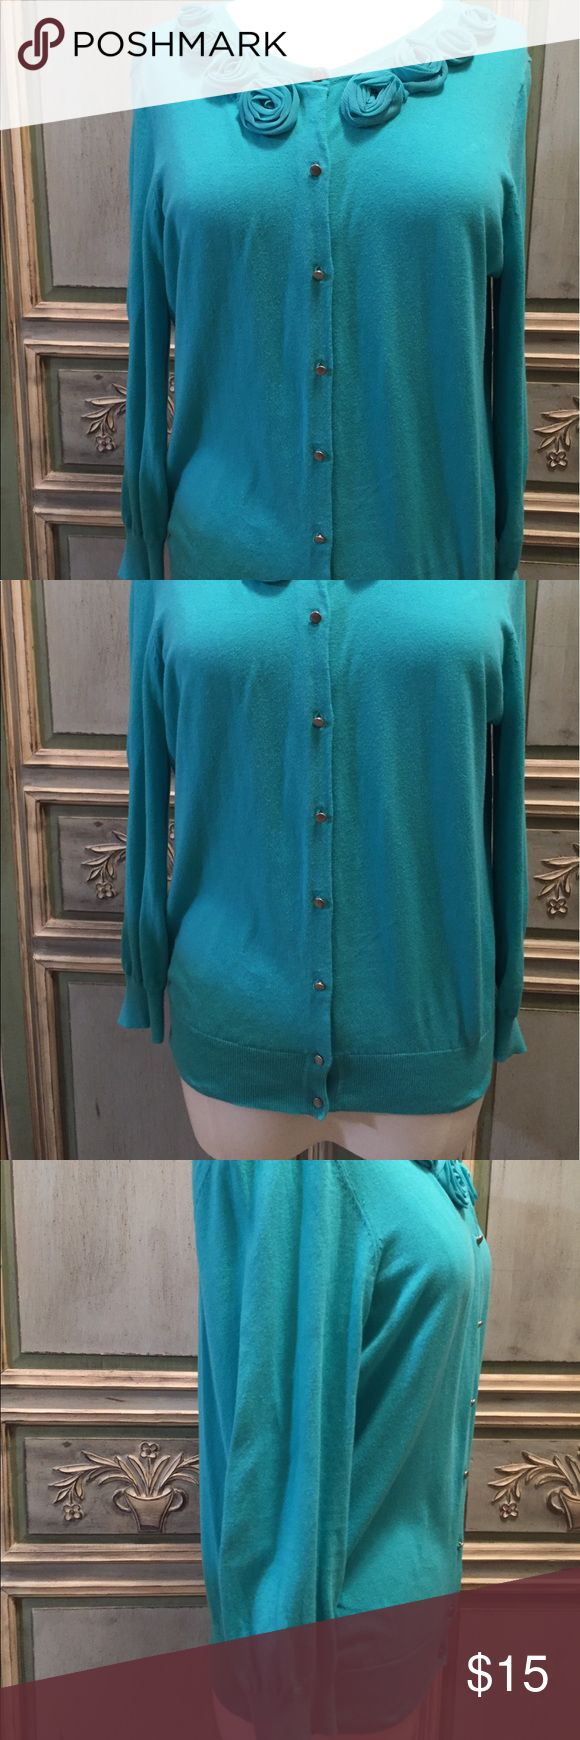 Turquoise Cardigan with Rose Floral Decoration Ann Taylor LOFT Turquoise Cardigan with Rose Floral Decoration around the neckline.  Silver Buttons.  Size: Large  Material Details: 100% Cotton  Care Details:  See photo of tag LOFT Sweaters Cardigans